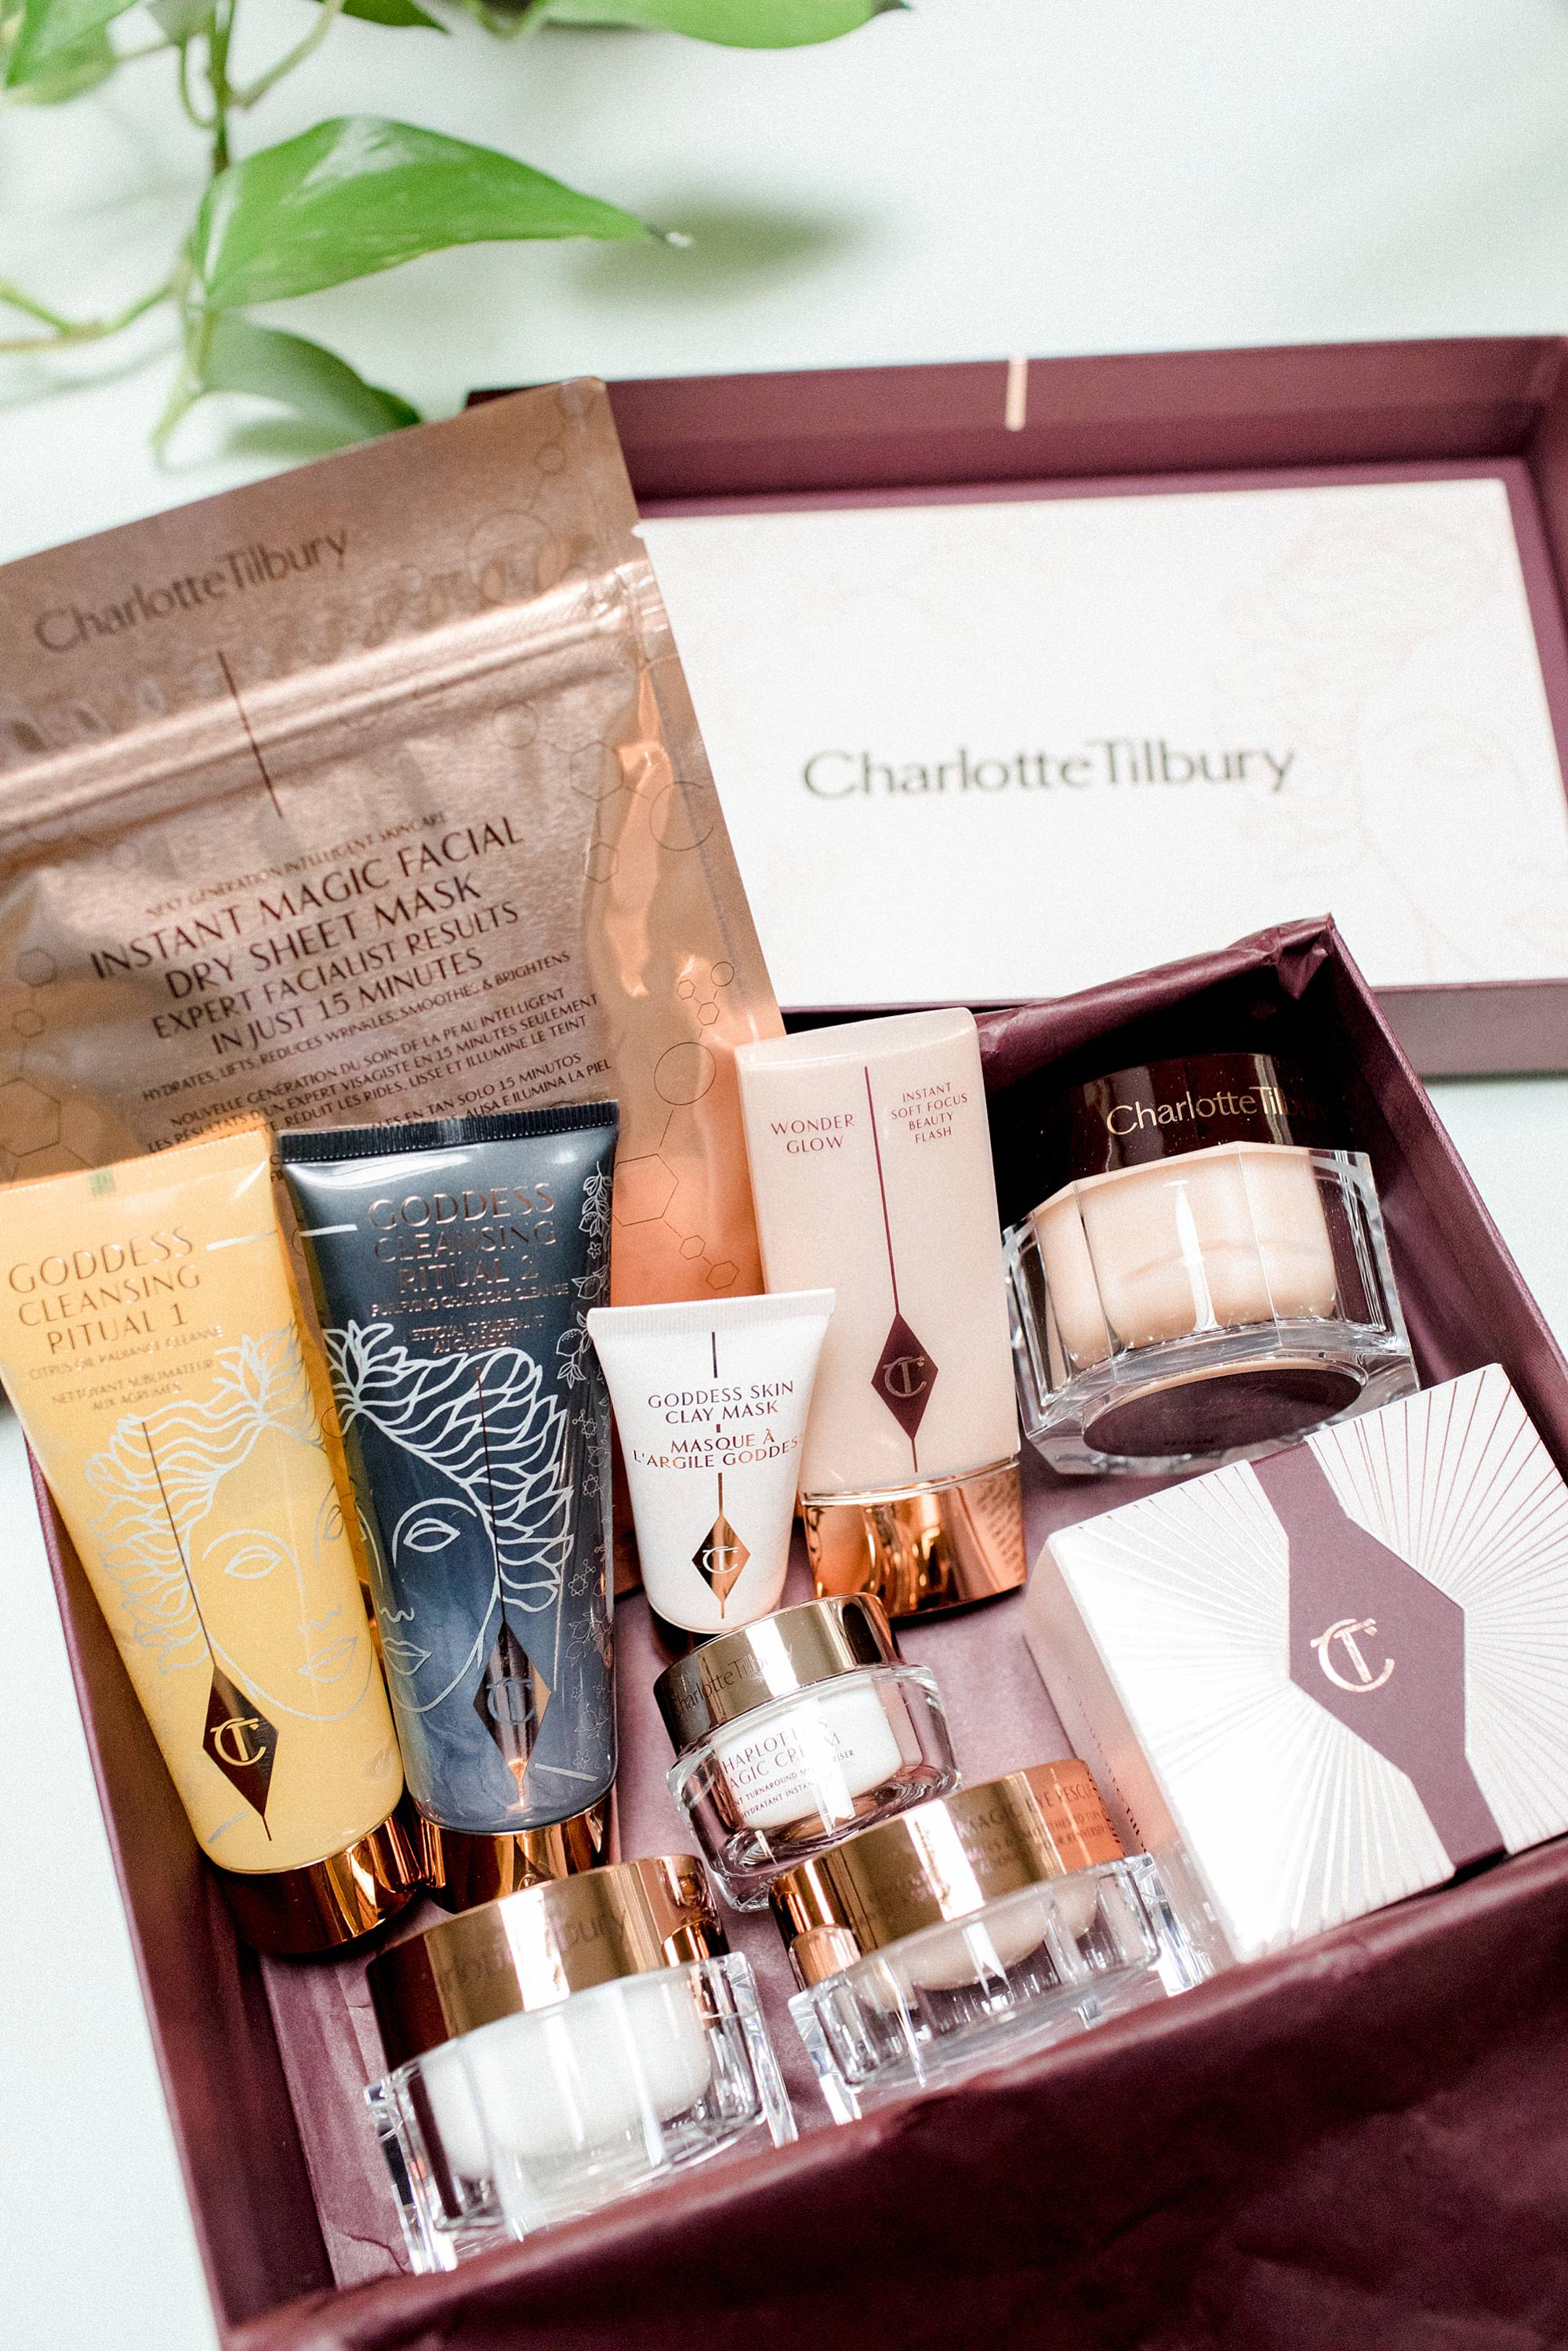 Charlotte Tillbury review of products